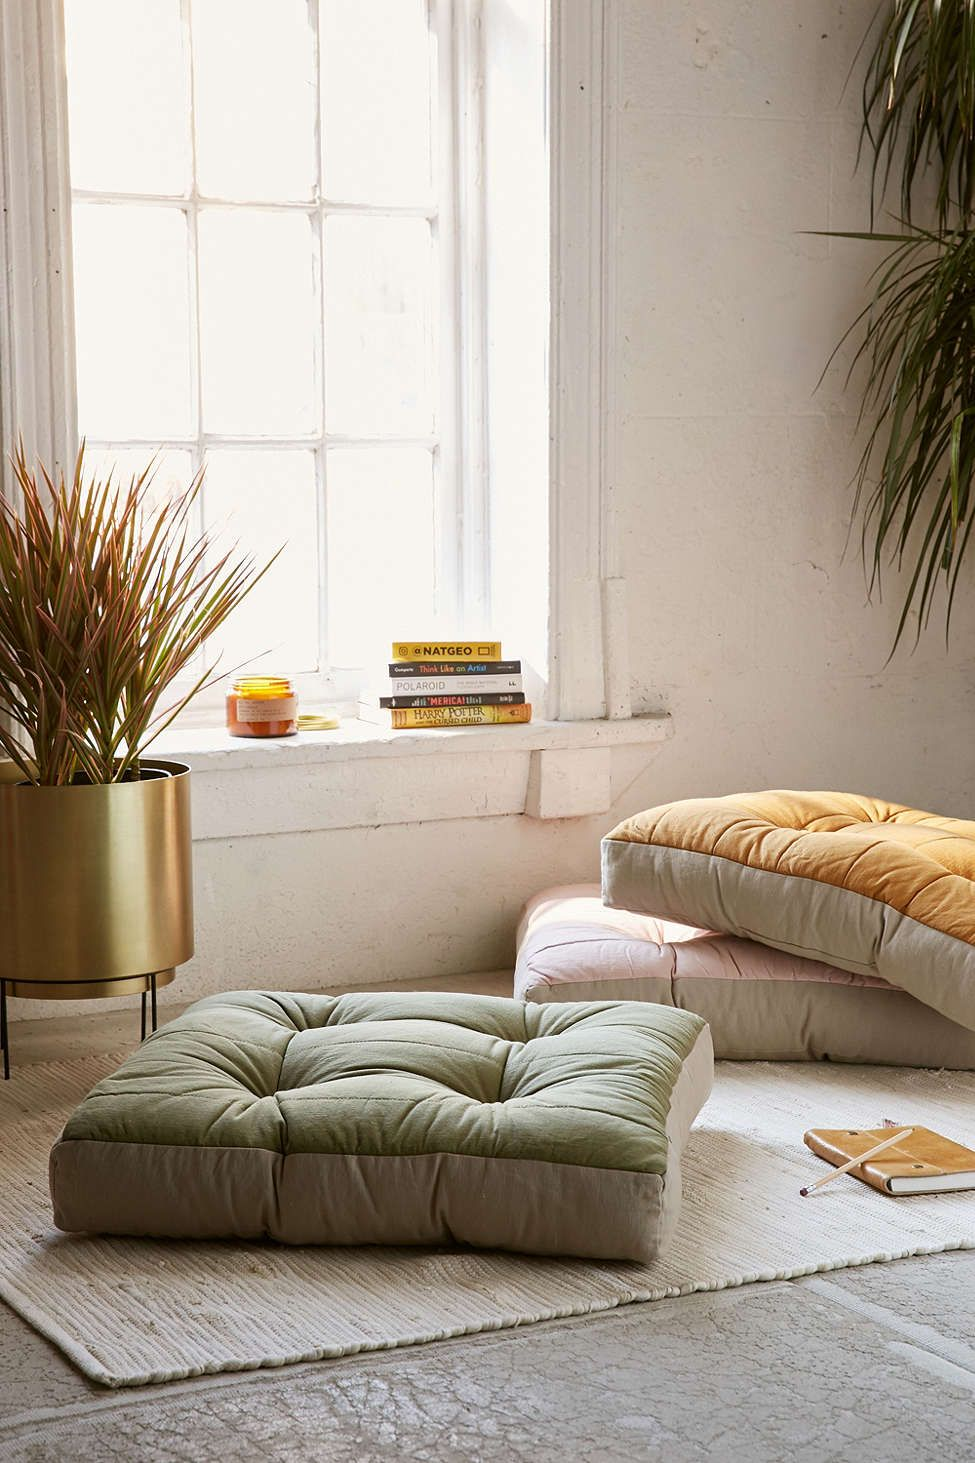 living room pillows floor wall decor around tv yooko colorblock pillow pinterest urban outfitters